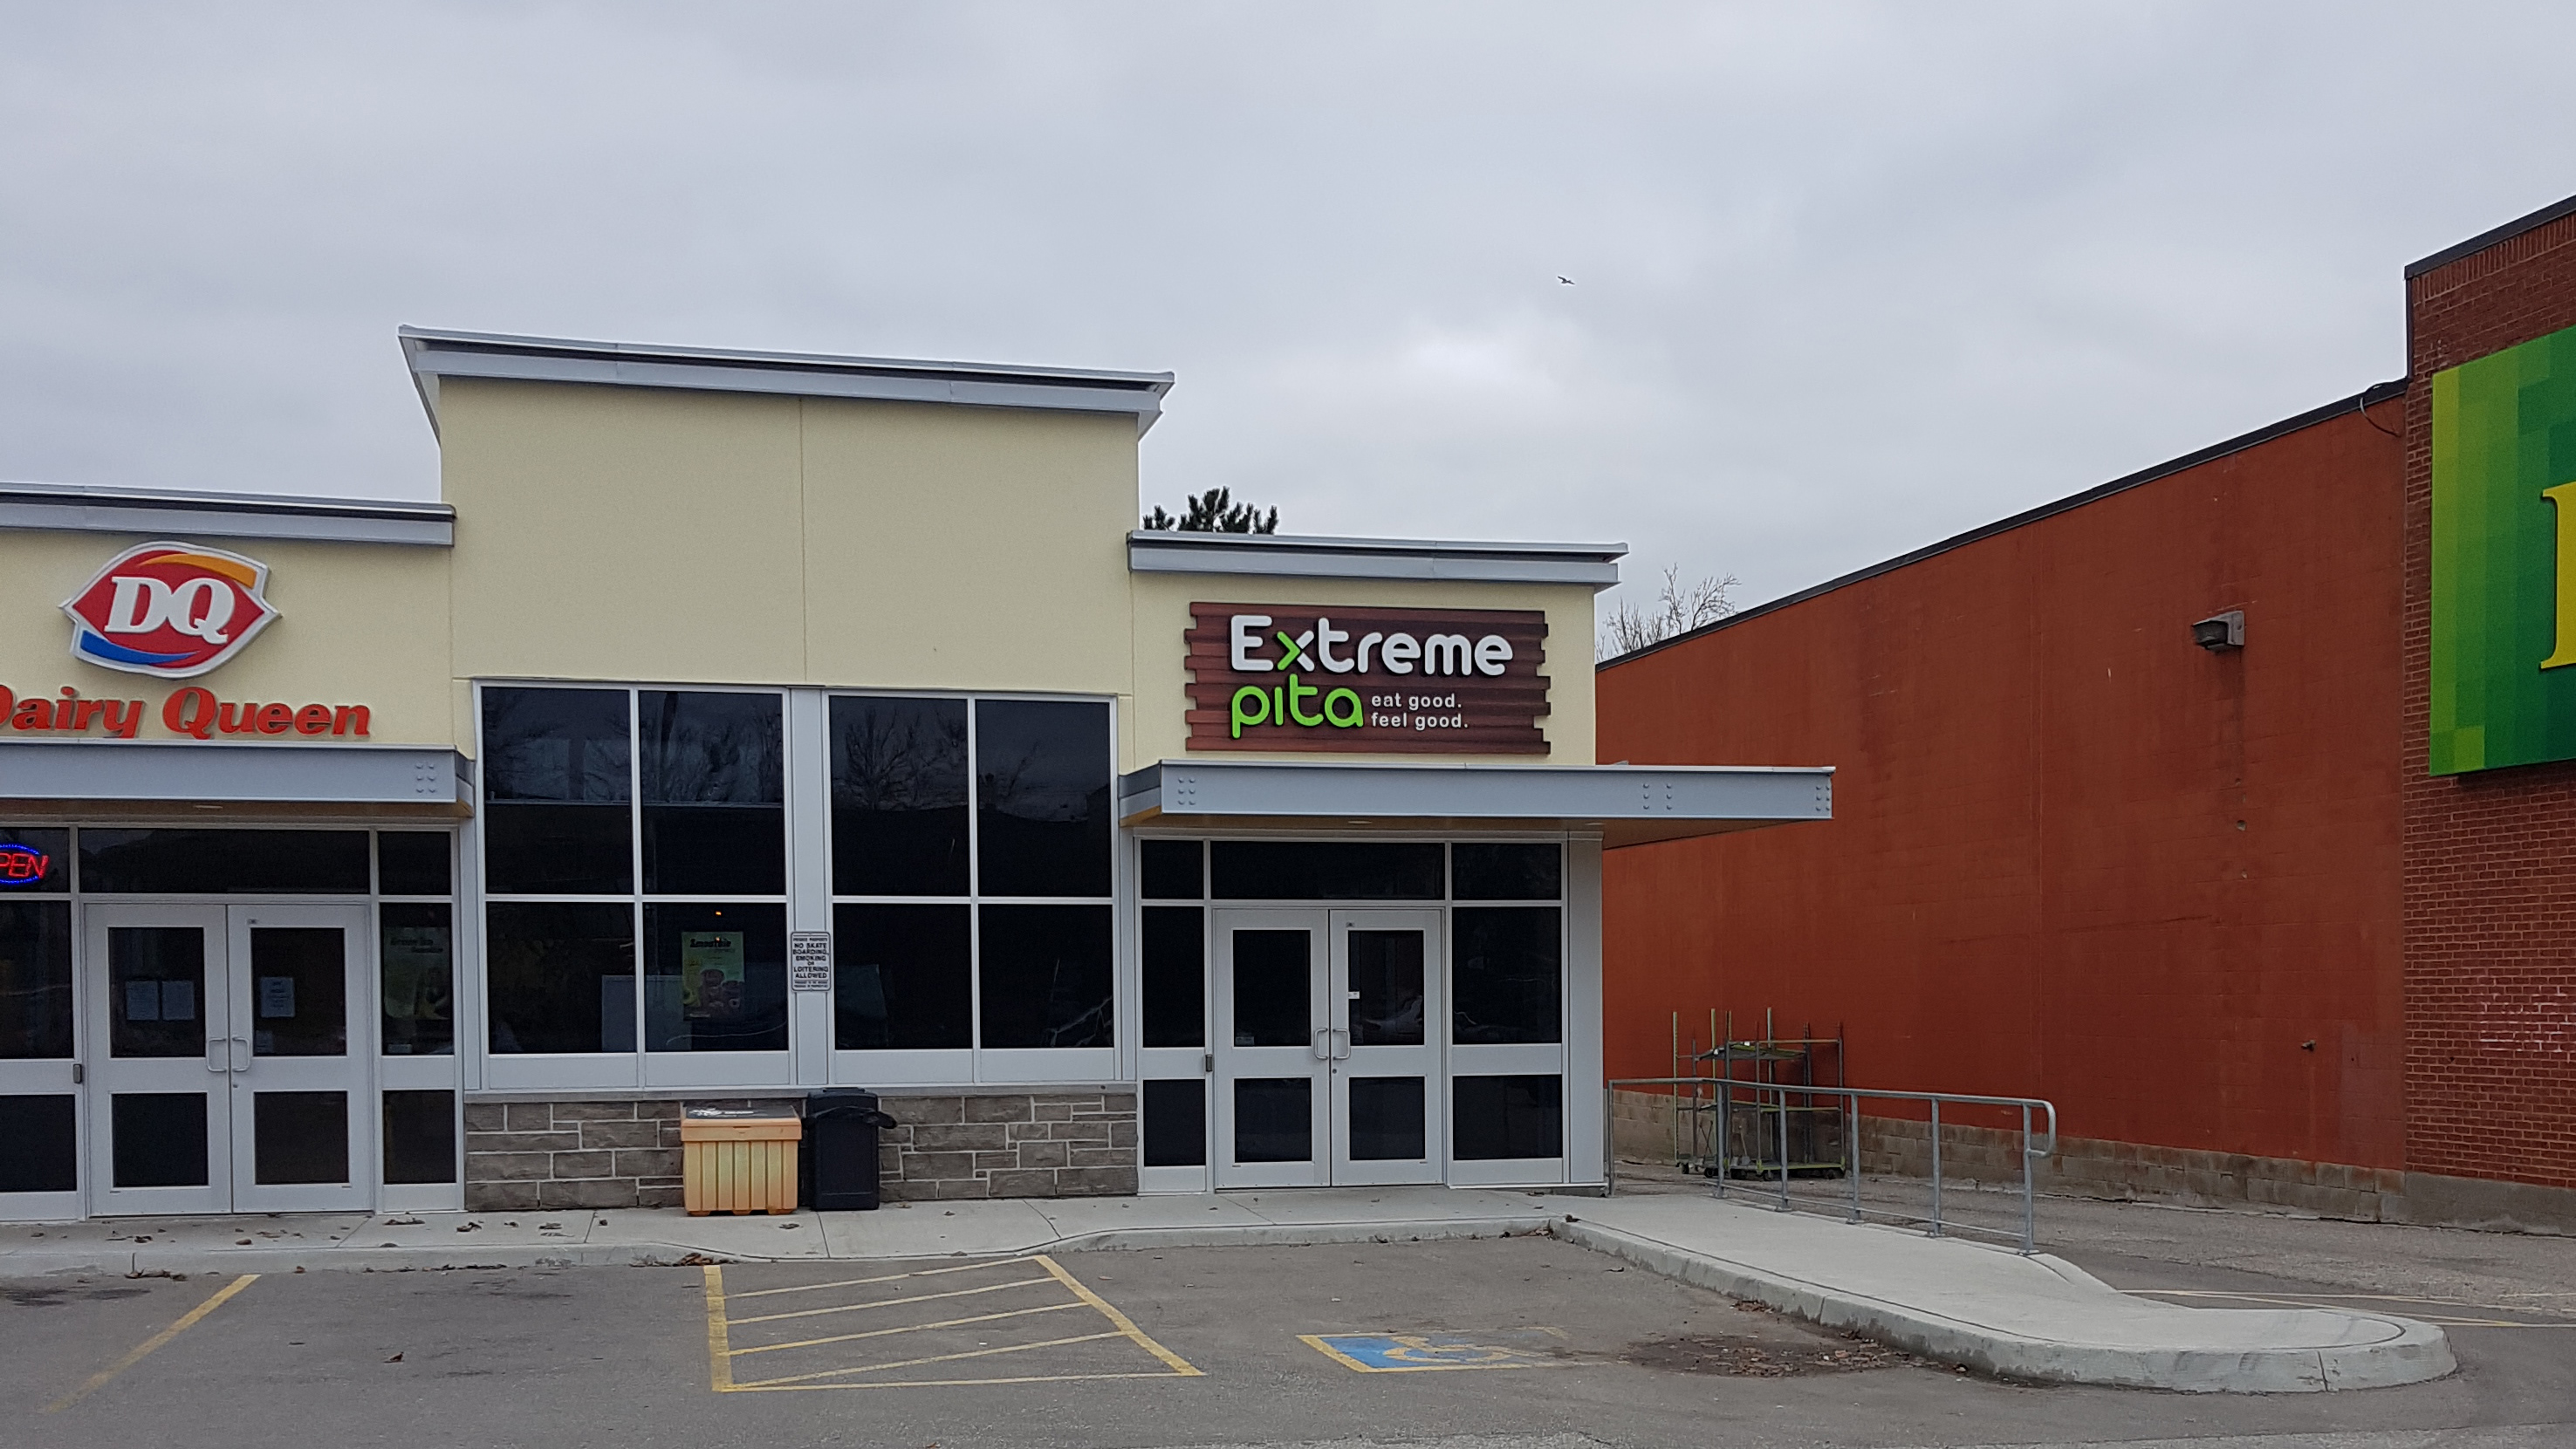 380 Eramosa Road, Guelph | For Lease